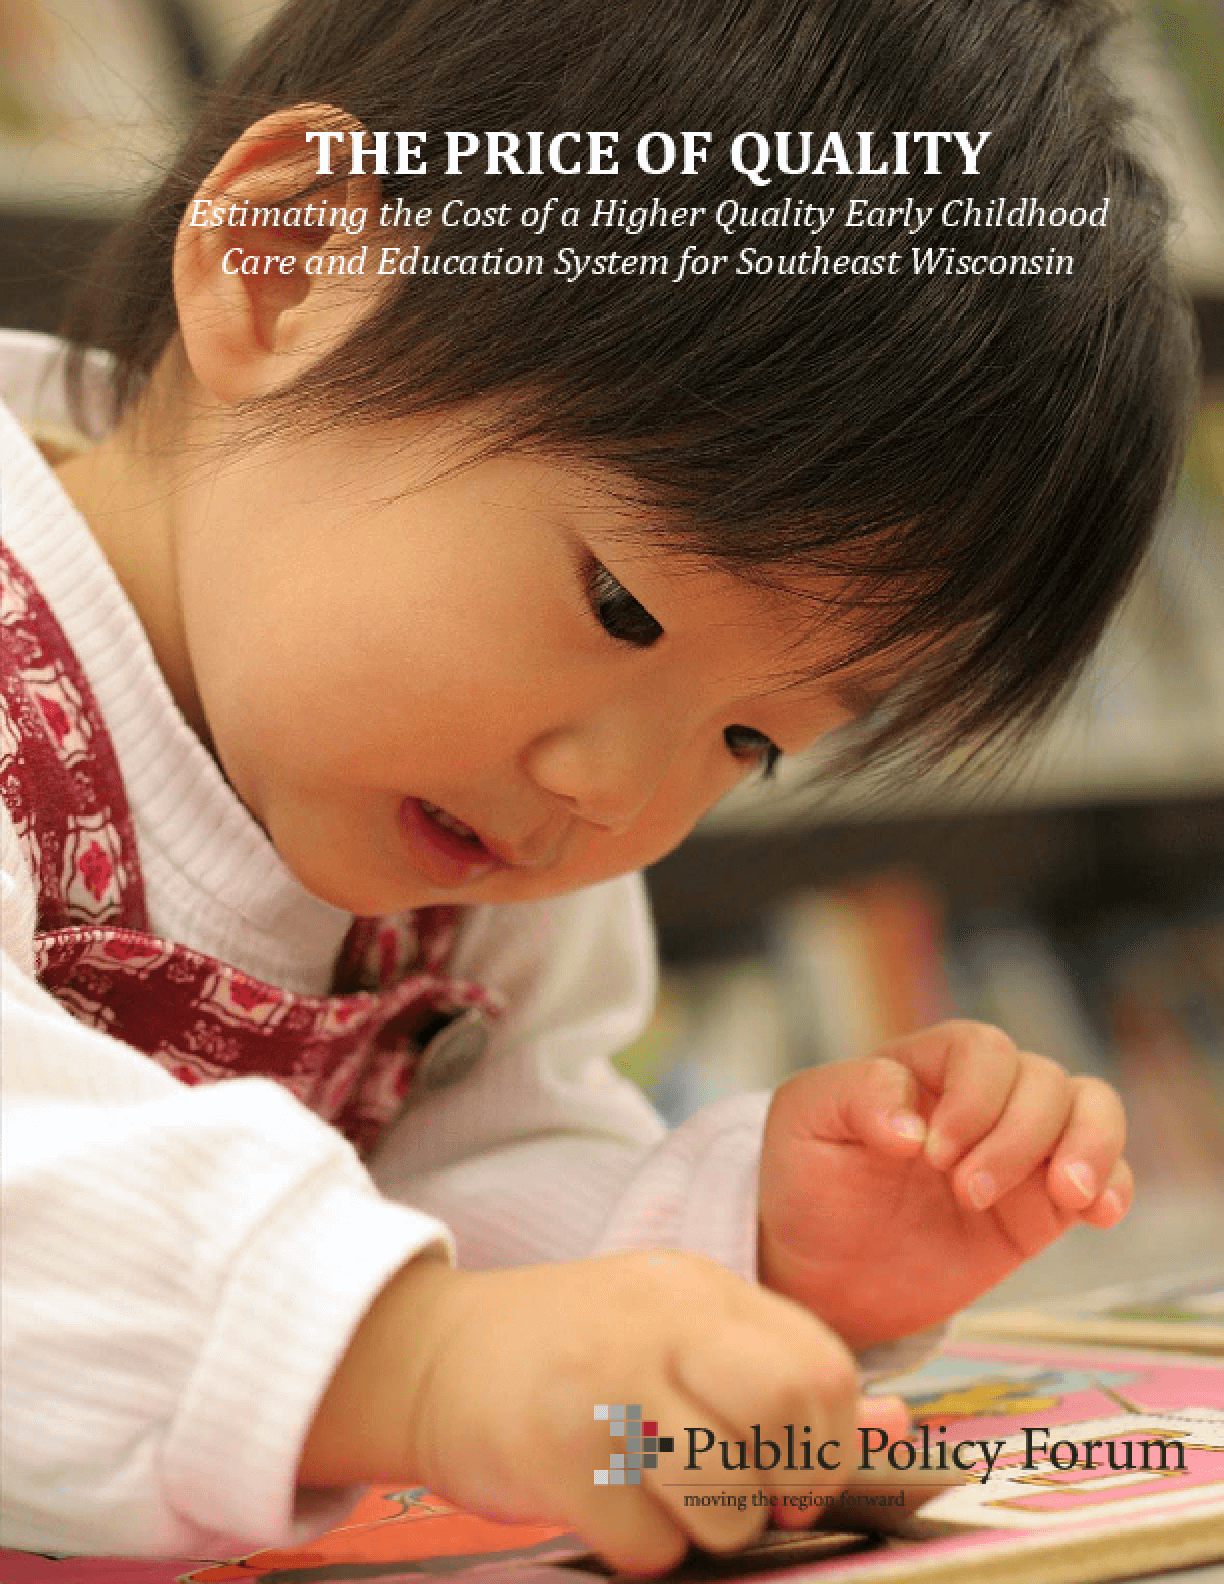 Price of Quality: Estimating the cost of a higher quality earlychildhood care and education system for Southeast Wisconsin, The